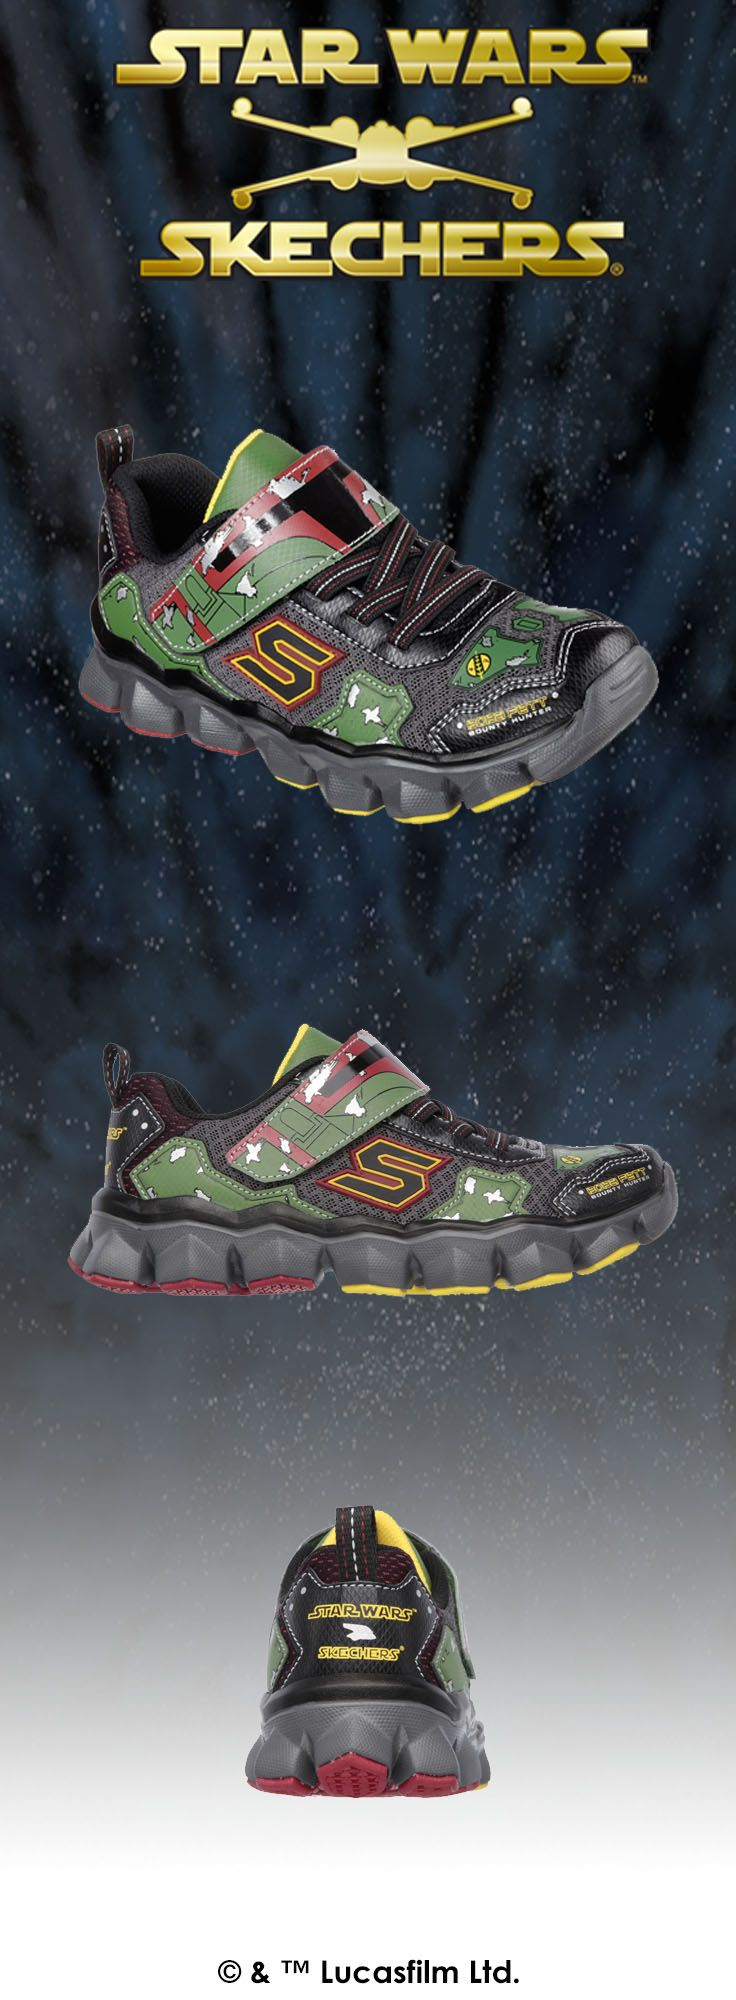 Show your true colors like the galaxy's top bounty hunter as Boba Fett™ in the Star Wars™ Skechers collection. | http://spr.ly/6006BuHbK